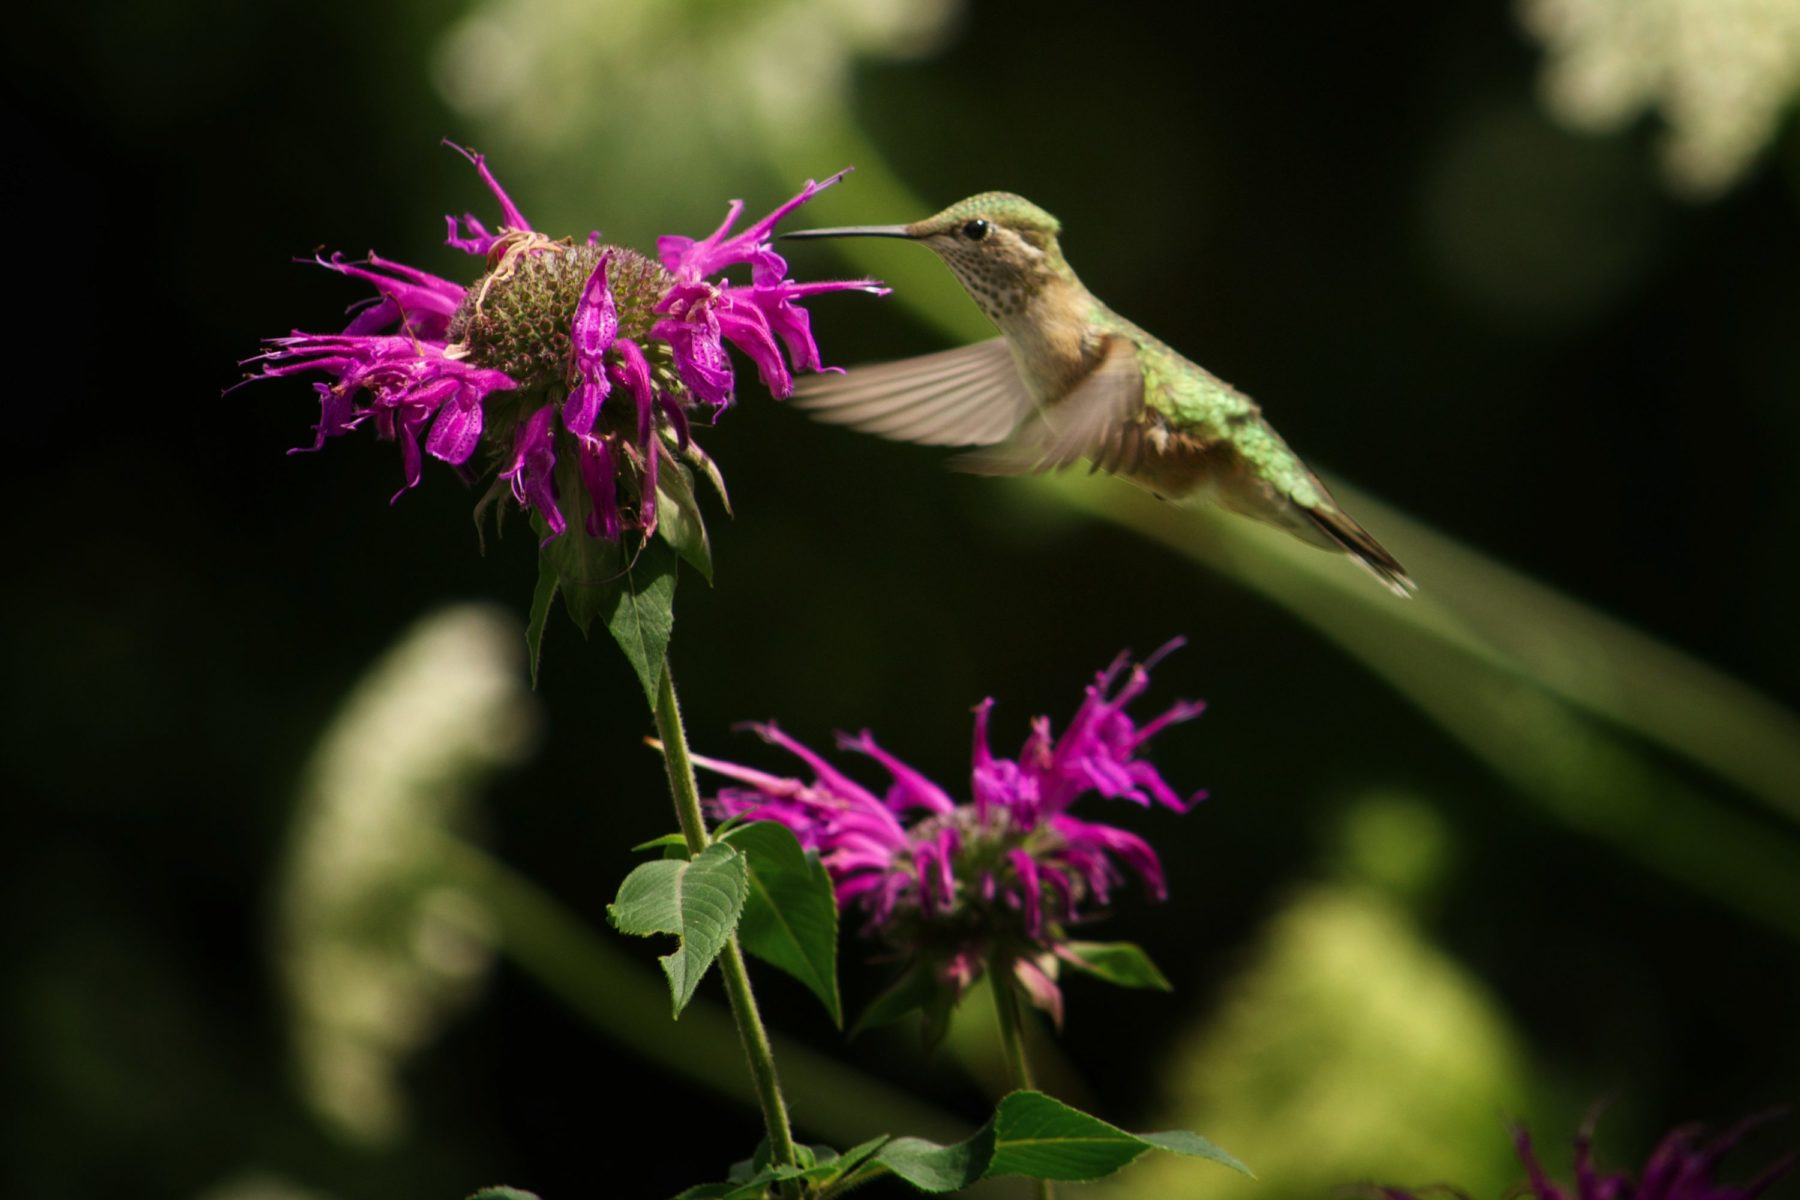 Tips for photographing HUMMINGBIRDS and 6 fun facts